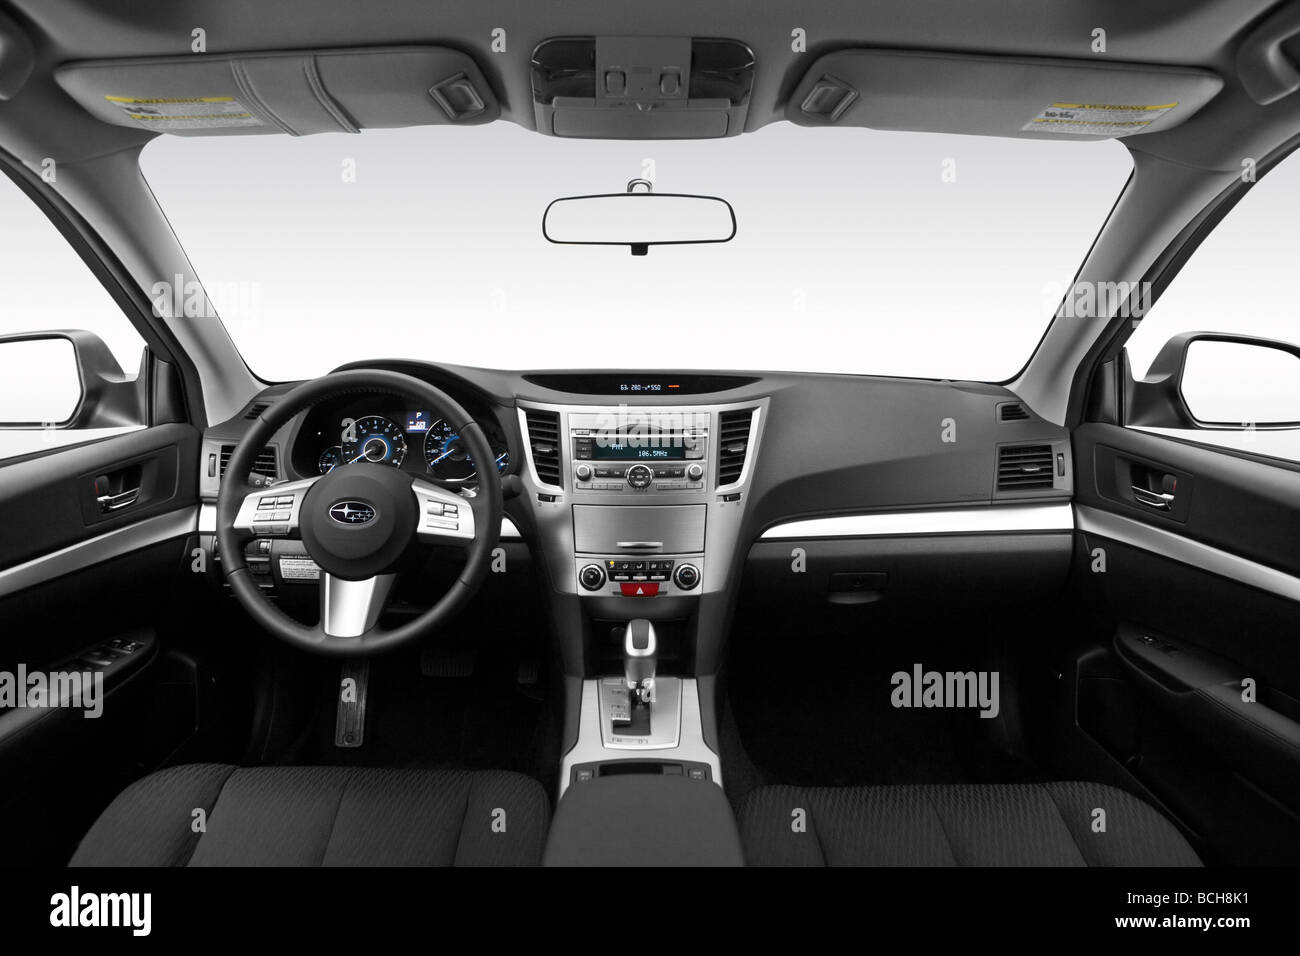 2010 subaru outback premium in gray dashboard center console stock photo royalty free. Black Bedroom Furniture Sets. Home Design Ideas